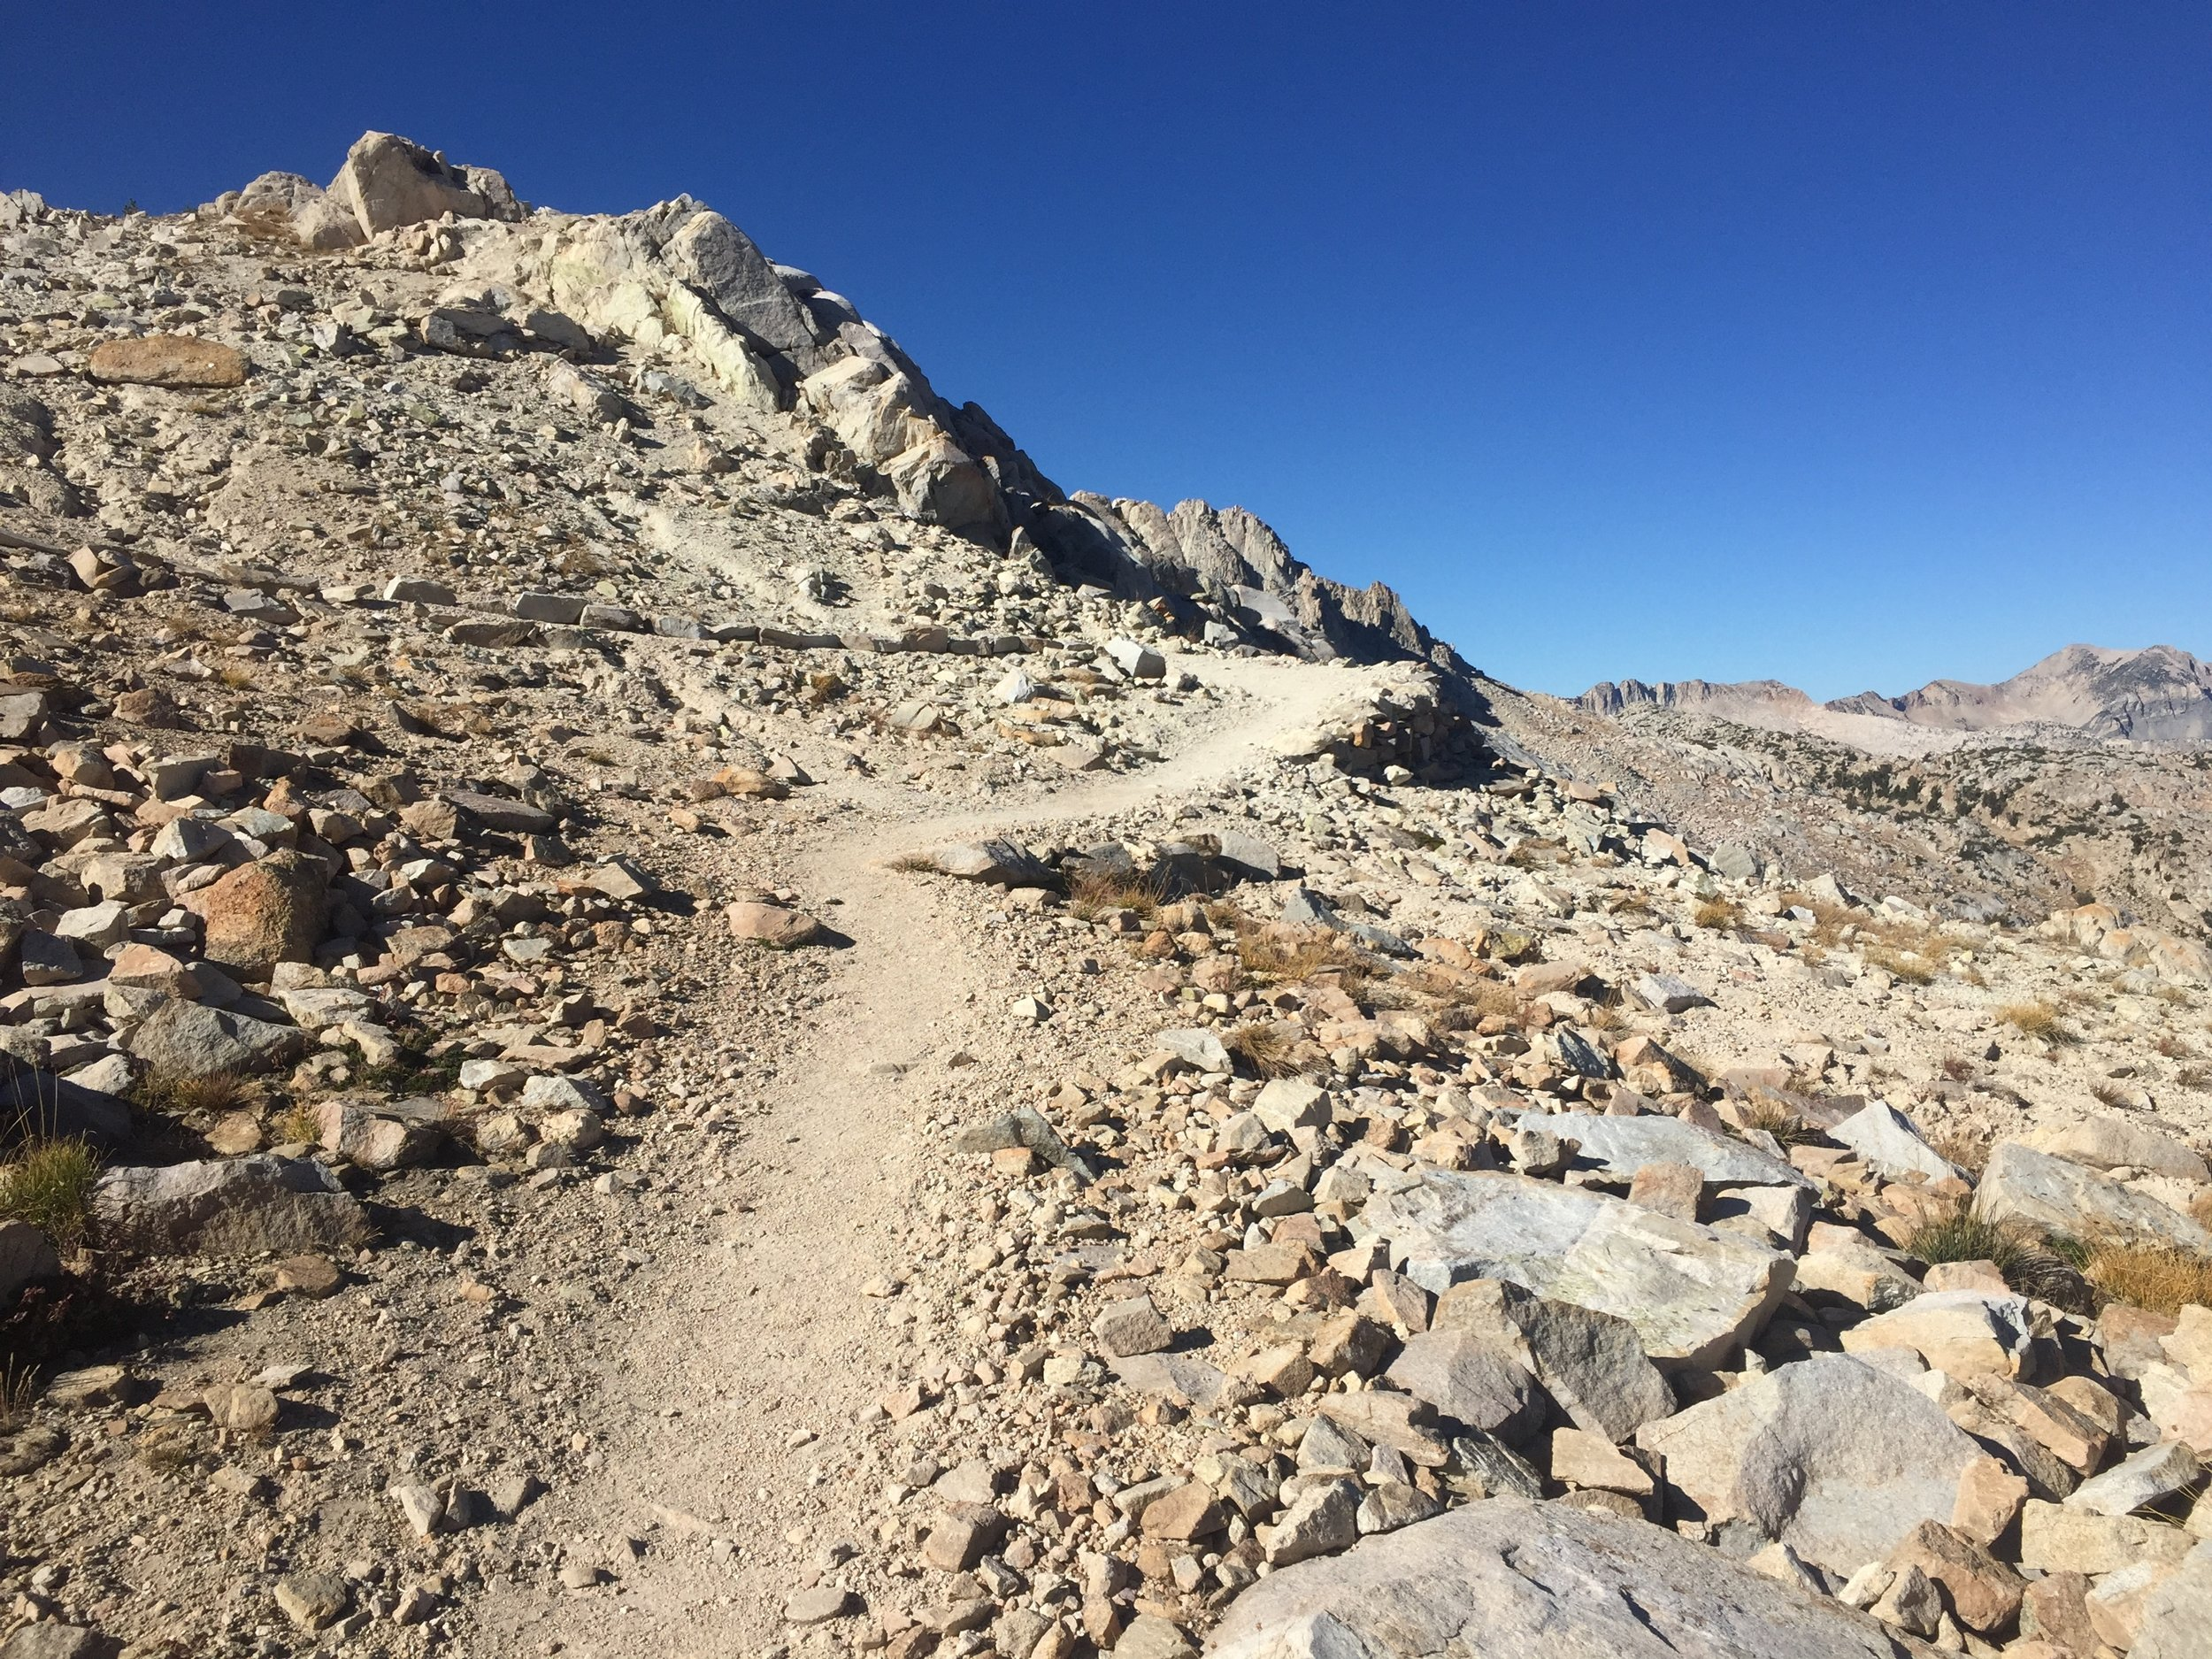 Following the trail over the final shoulder before dropping down to Silver Pass